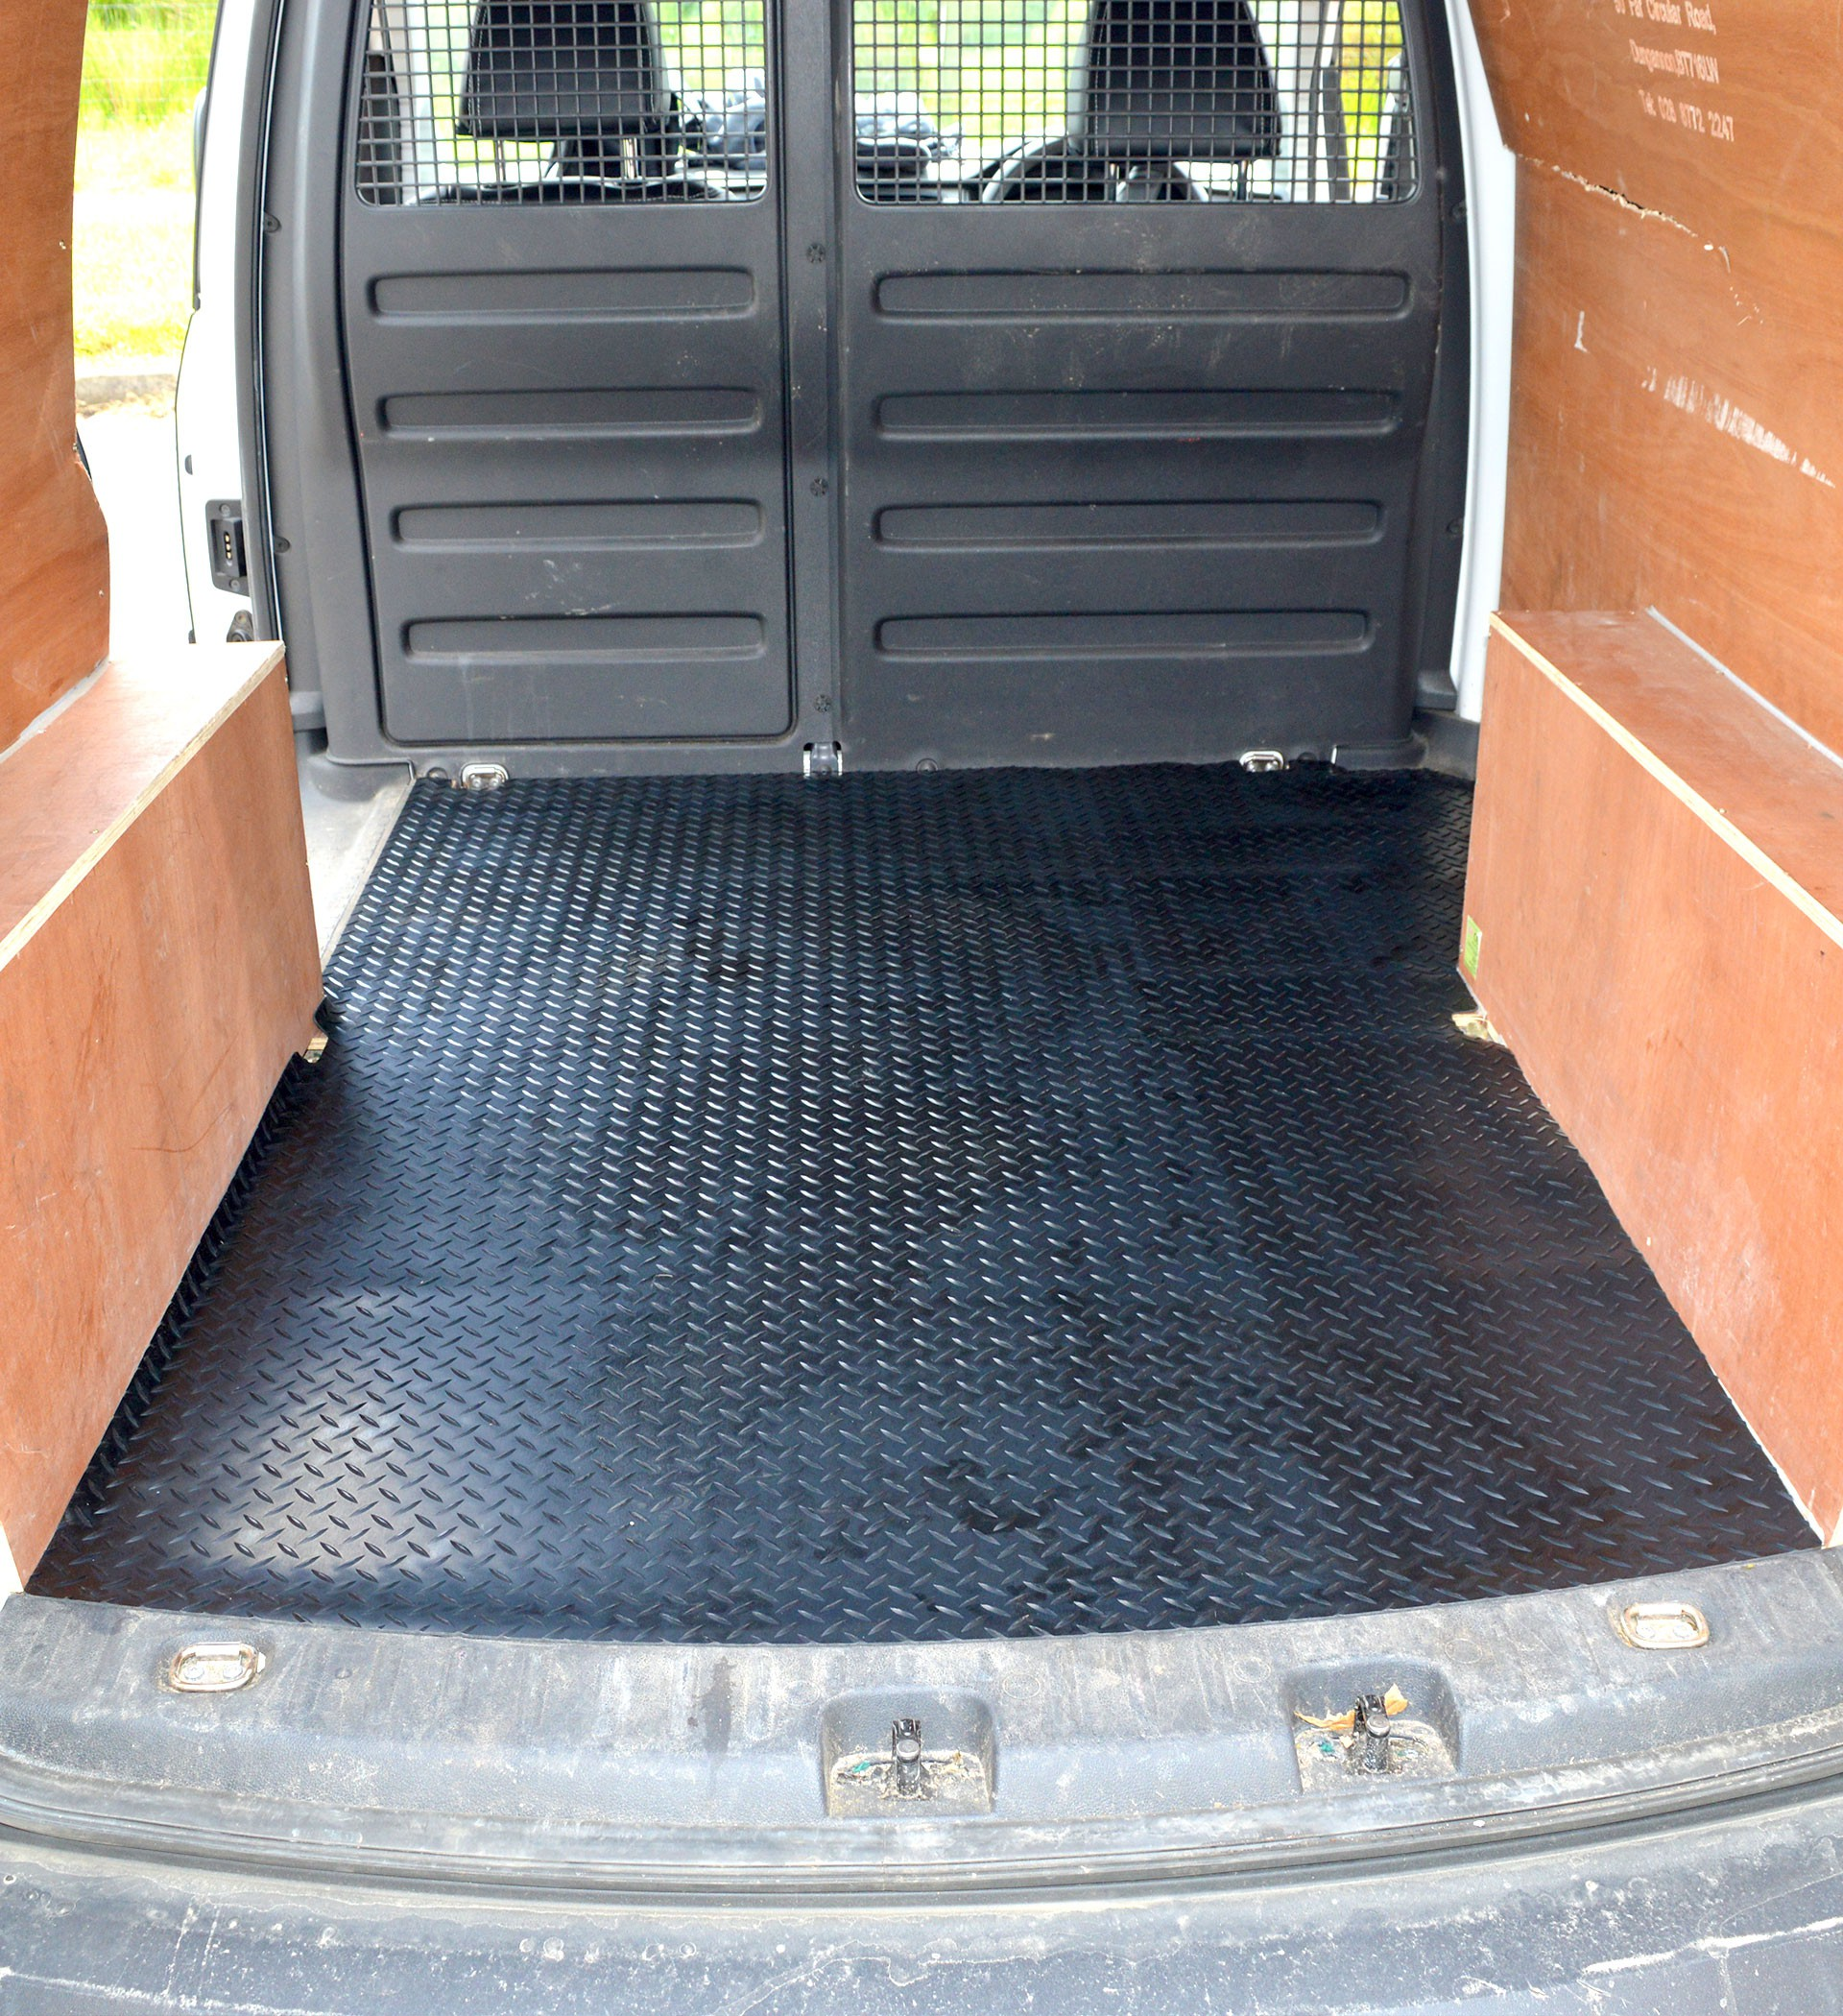 VW Caddy Rear load liner rubber mat